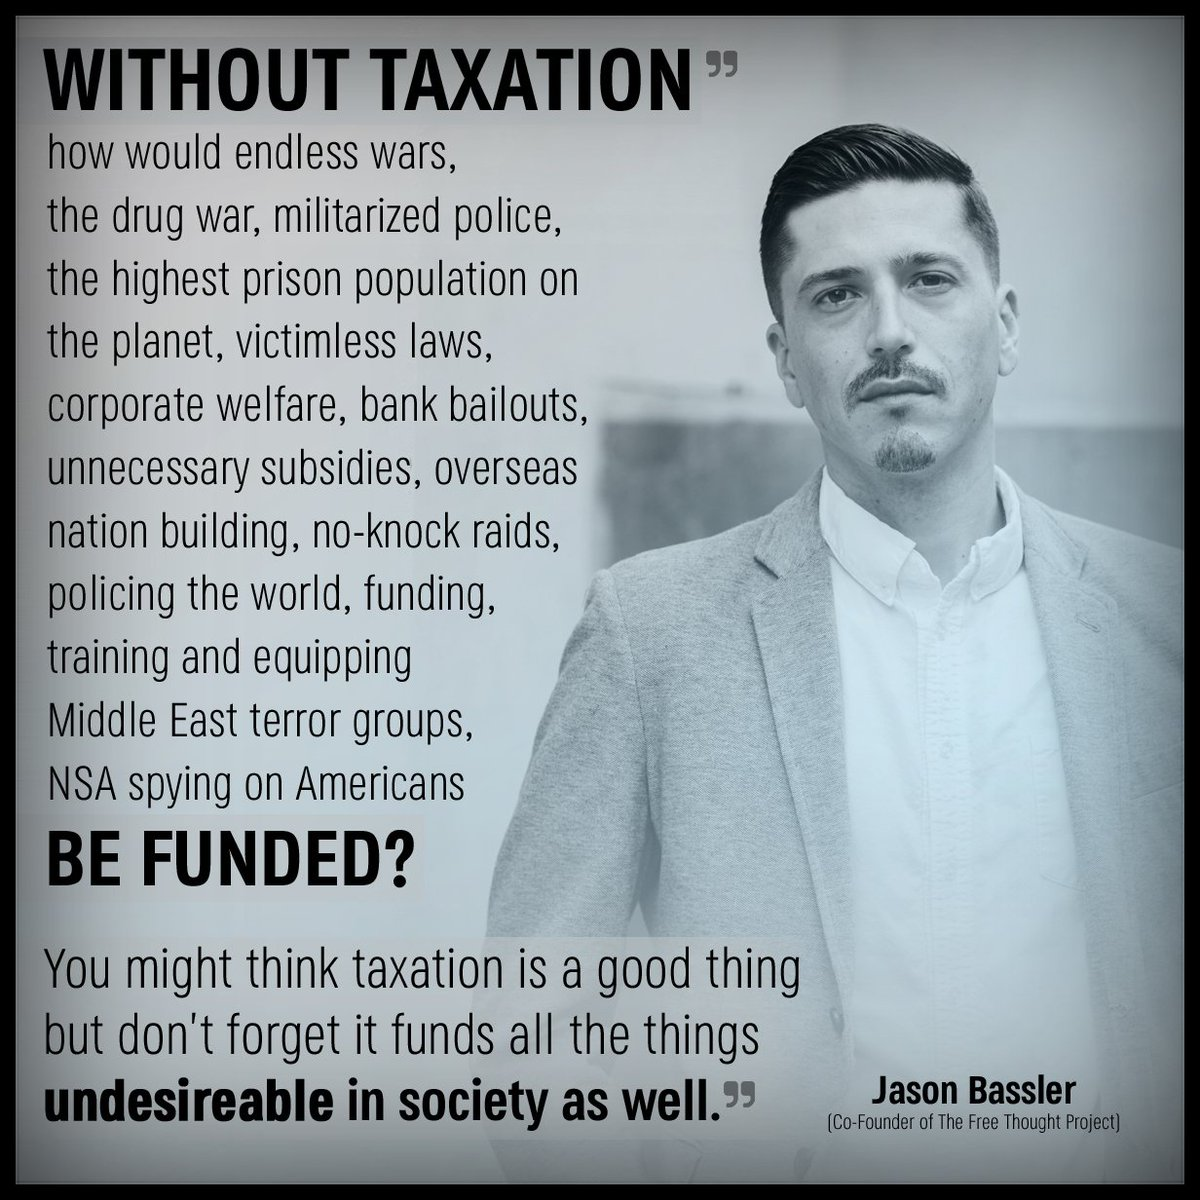 A VERY important point on tax day from the TFTP co-founder!   #TaxationIsTheft #TaxationIsViolence <br>http://pic.twitter.com/Z1tJSyhiJW